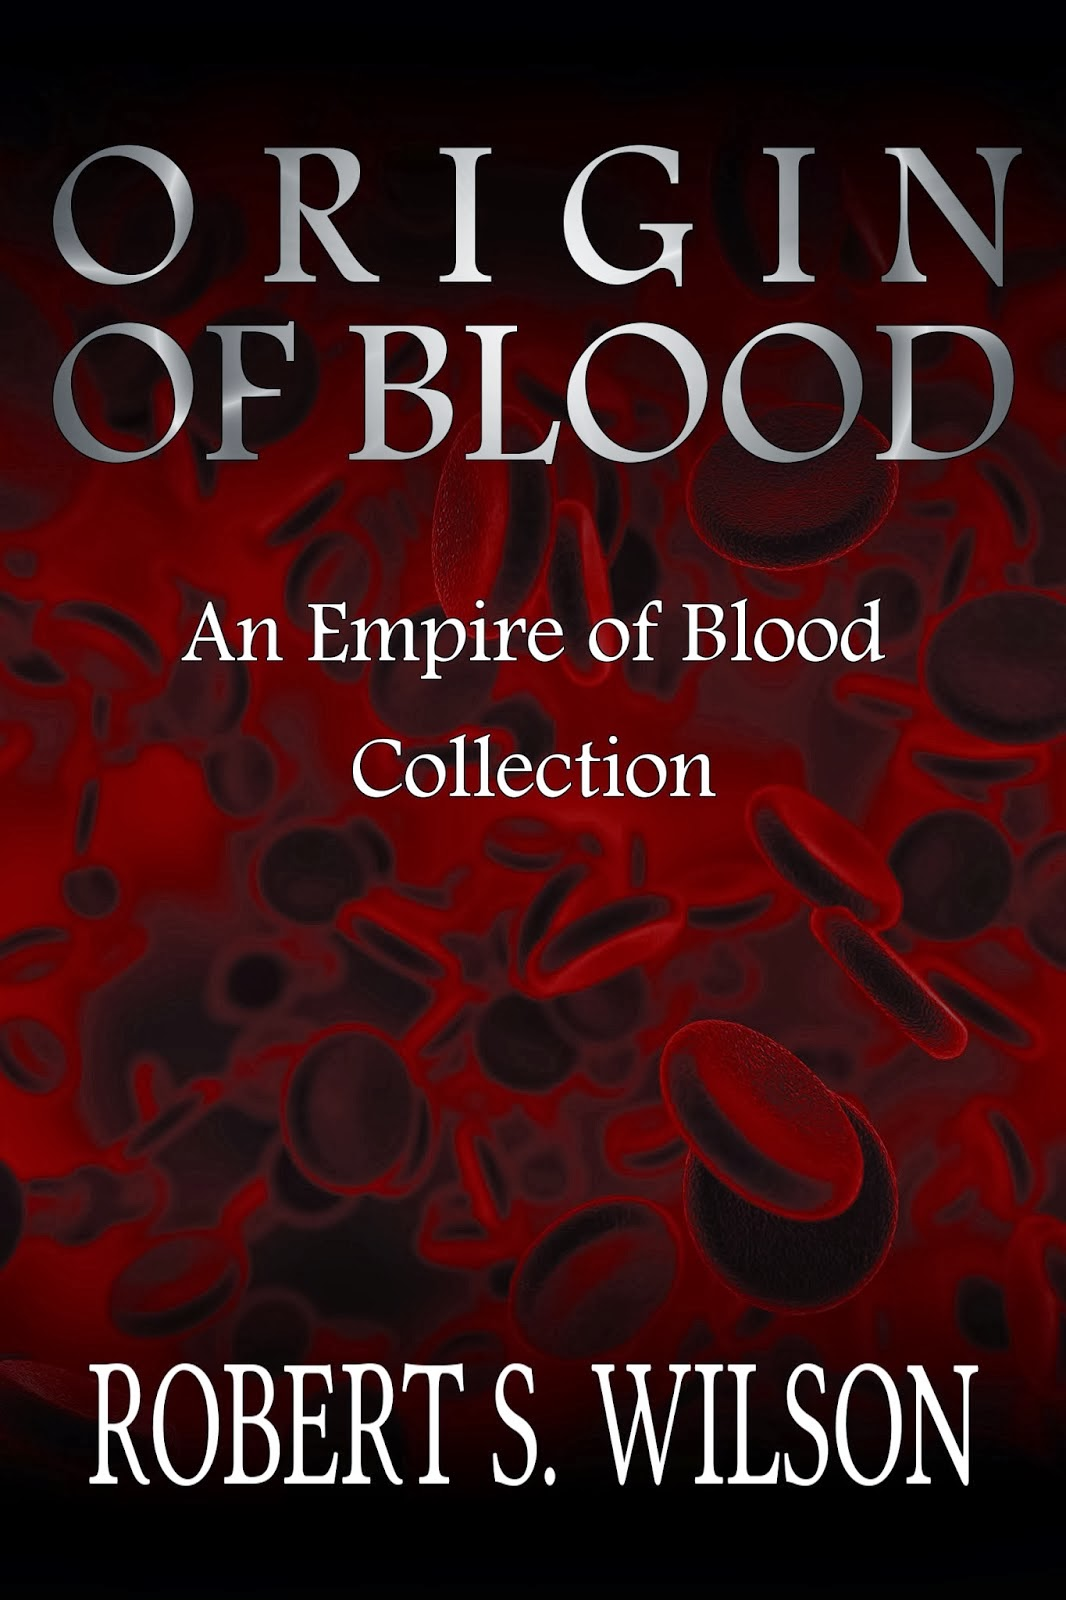 Pre-order your copy of ORIGIN OF BLOOD at 40% off now!